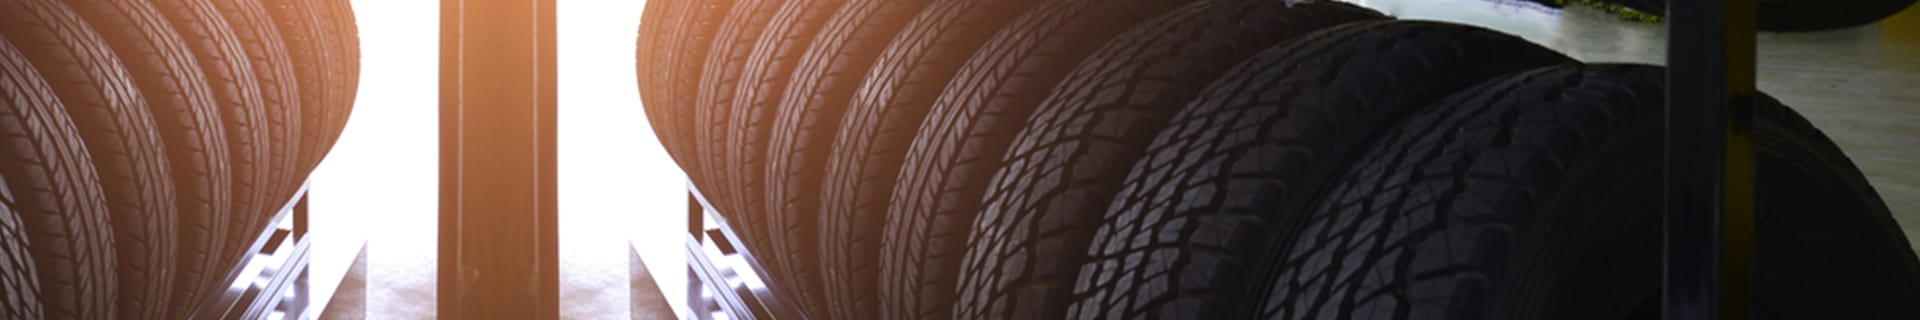 How to choose the right tyres for my car?